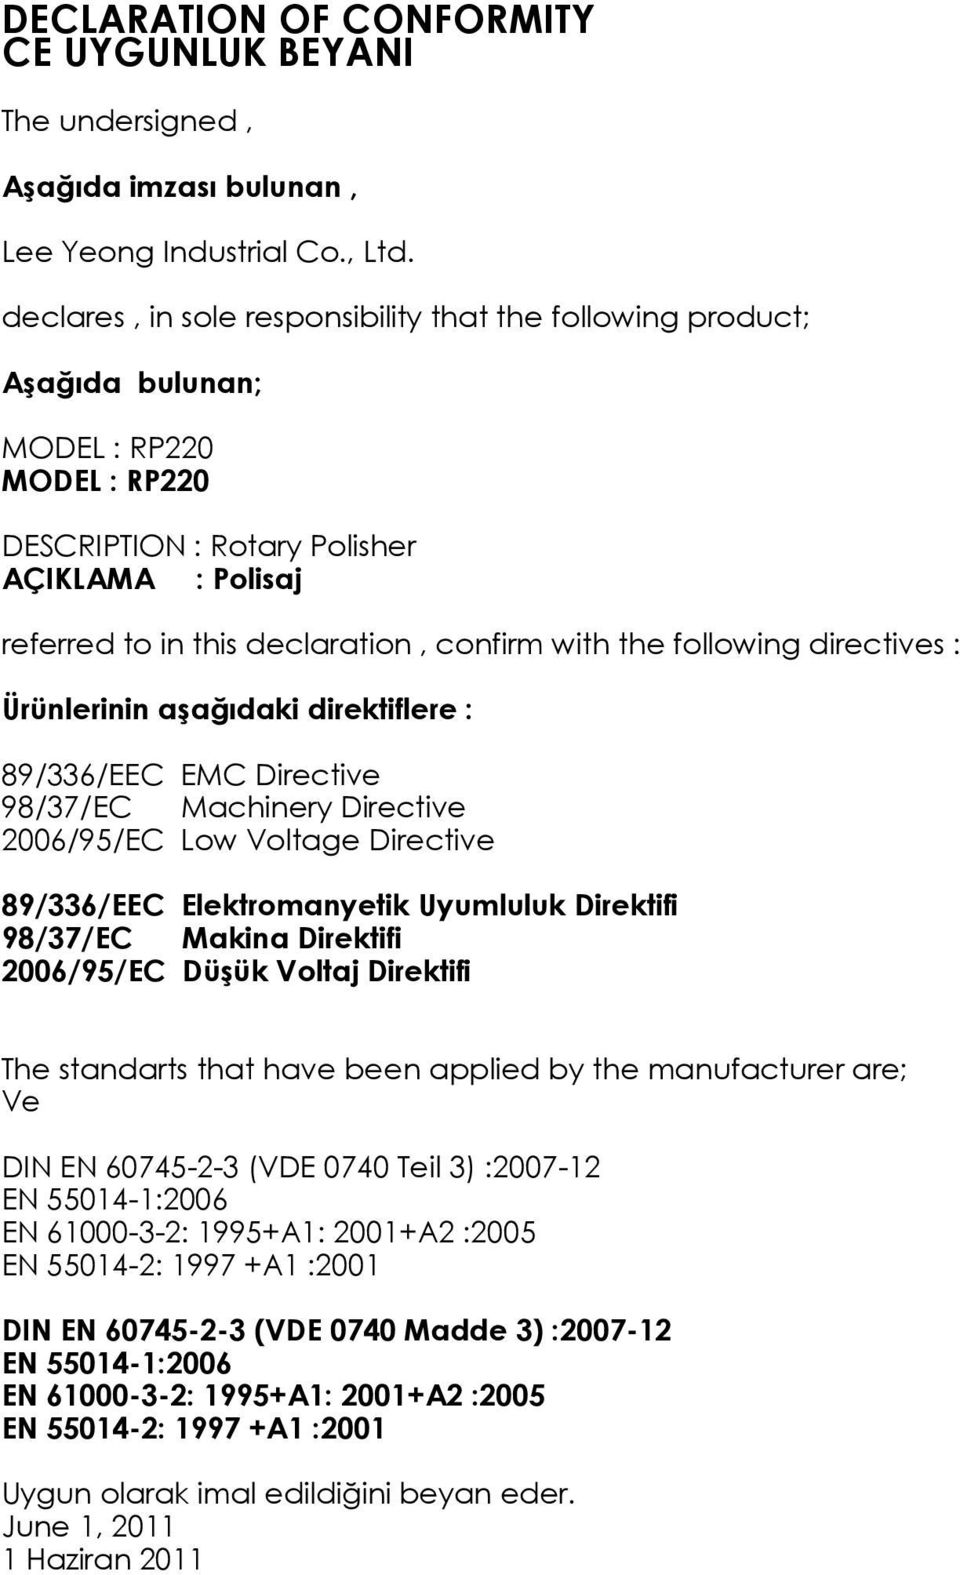 with the following directives : Ürünlerinin aģağıdaki direktiflere : 89/336/EEC EMC Directive 98/37/EC Machinery Directive 2006/95/EC Low Voltage Directive 89/336/EEC Elektromanyetik Uyumluluk